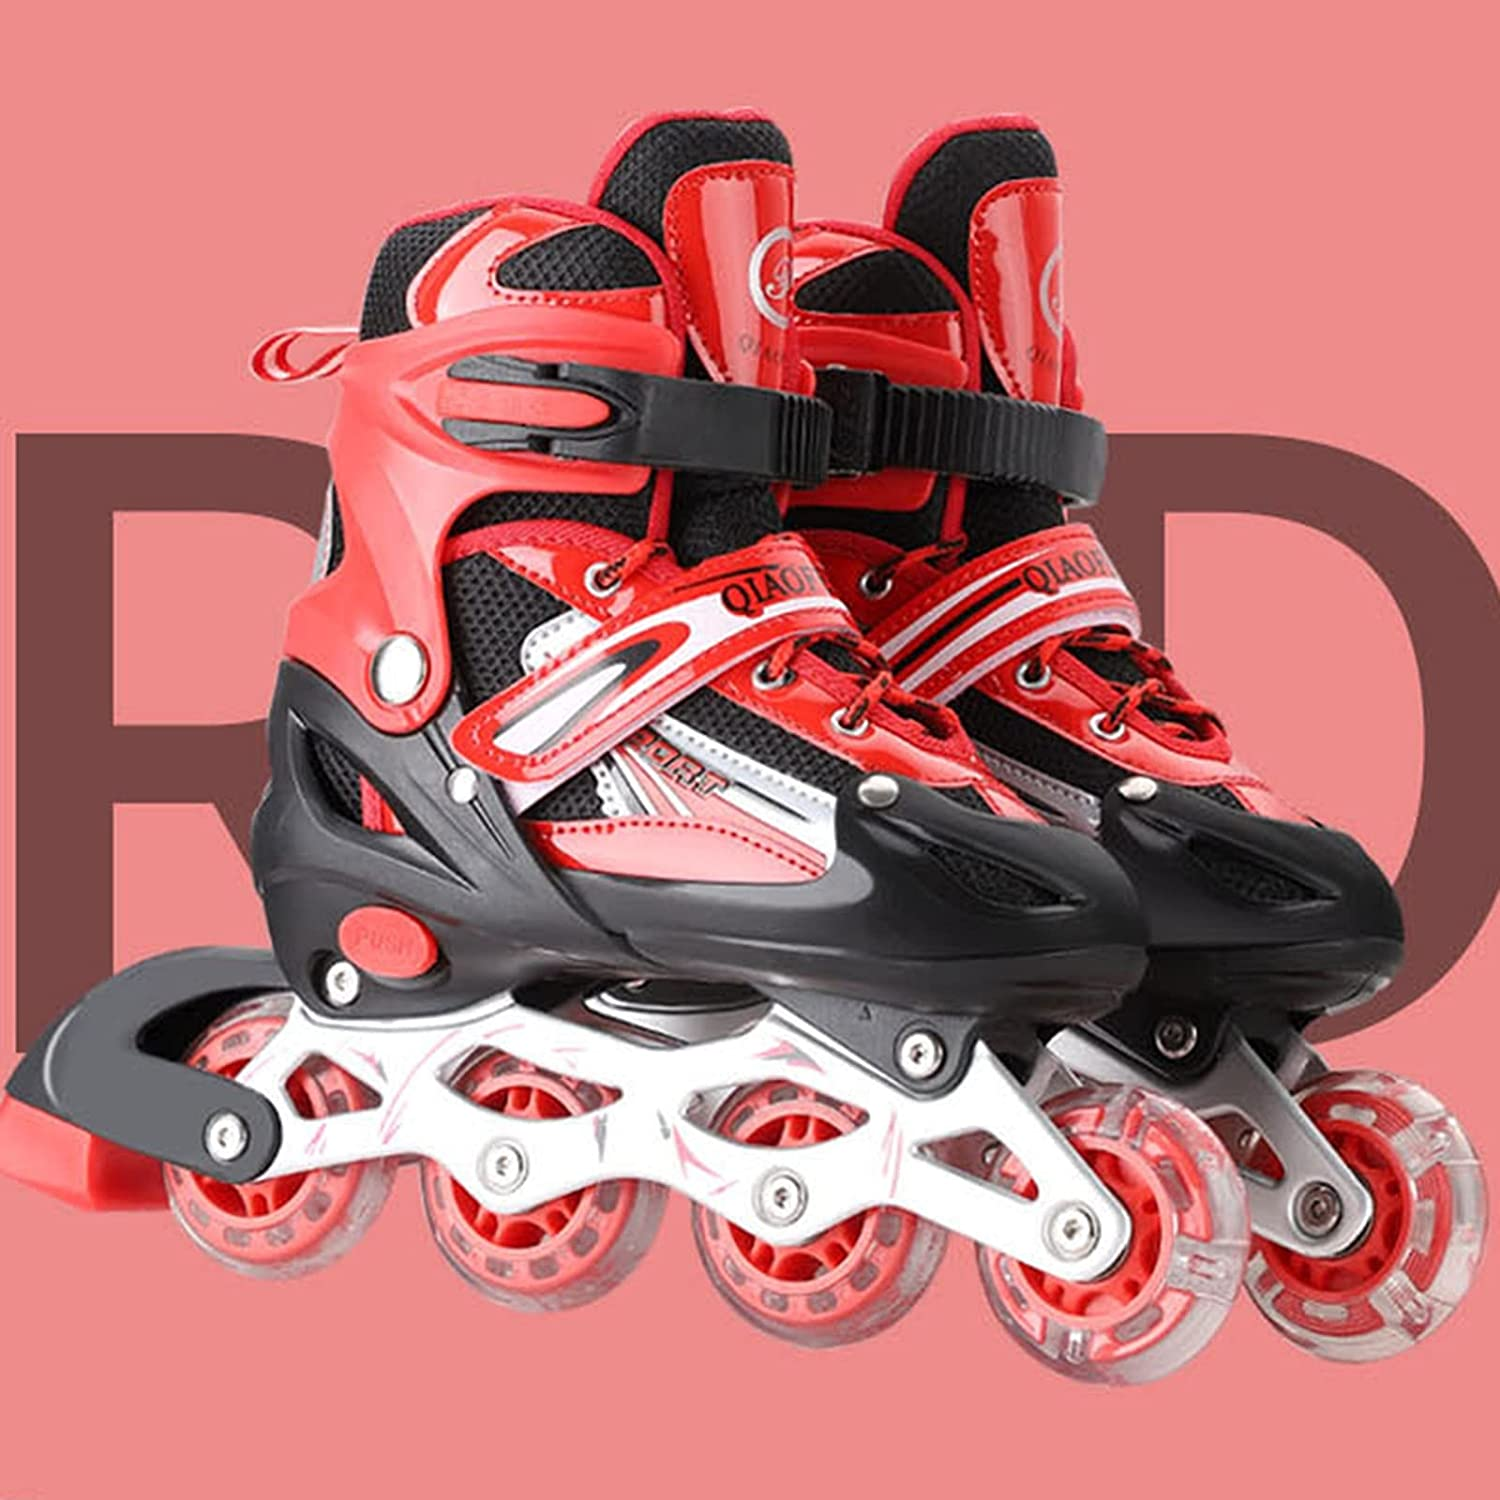 URBBR Inline Skates Kids wholesale and I Low price Roller Adults Adjustable